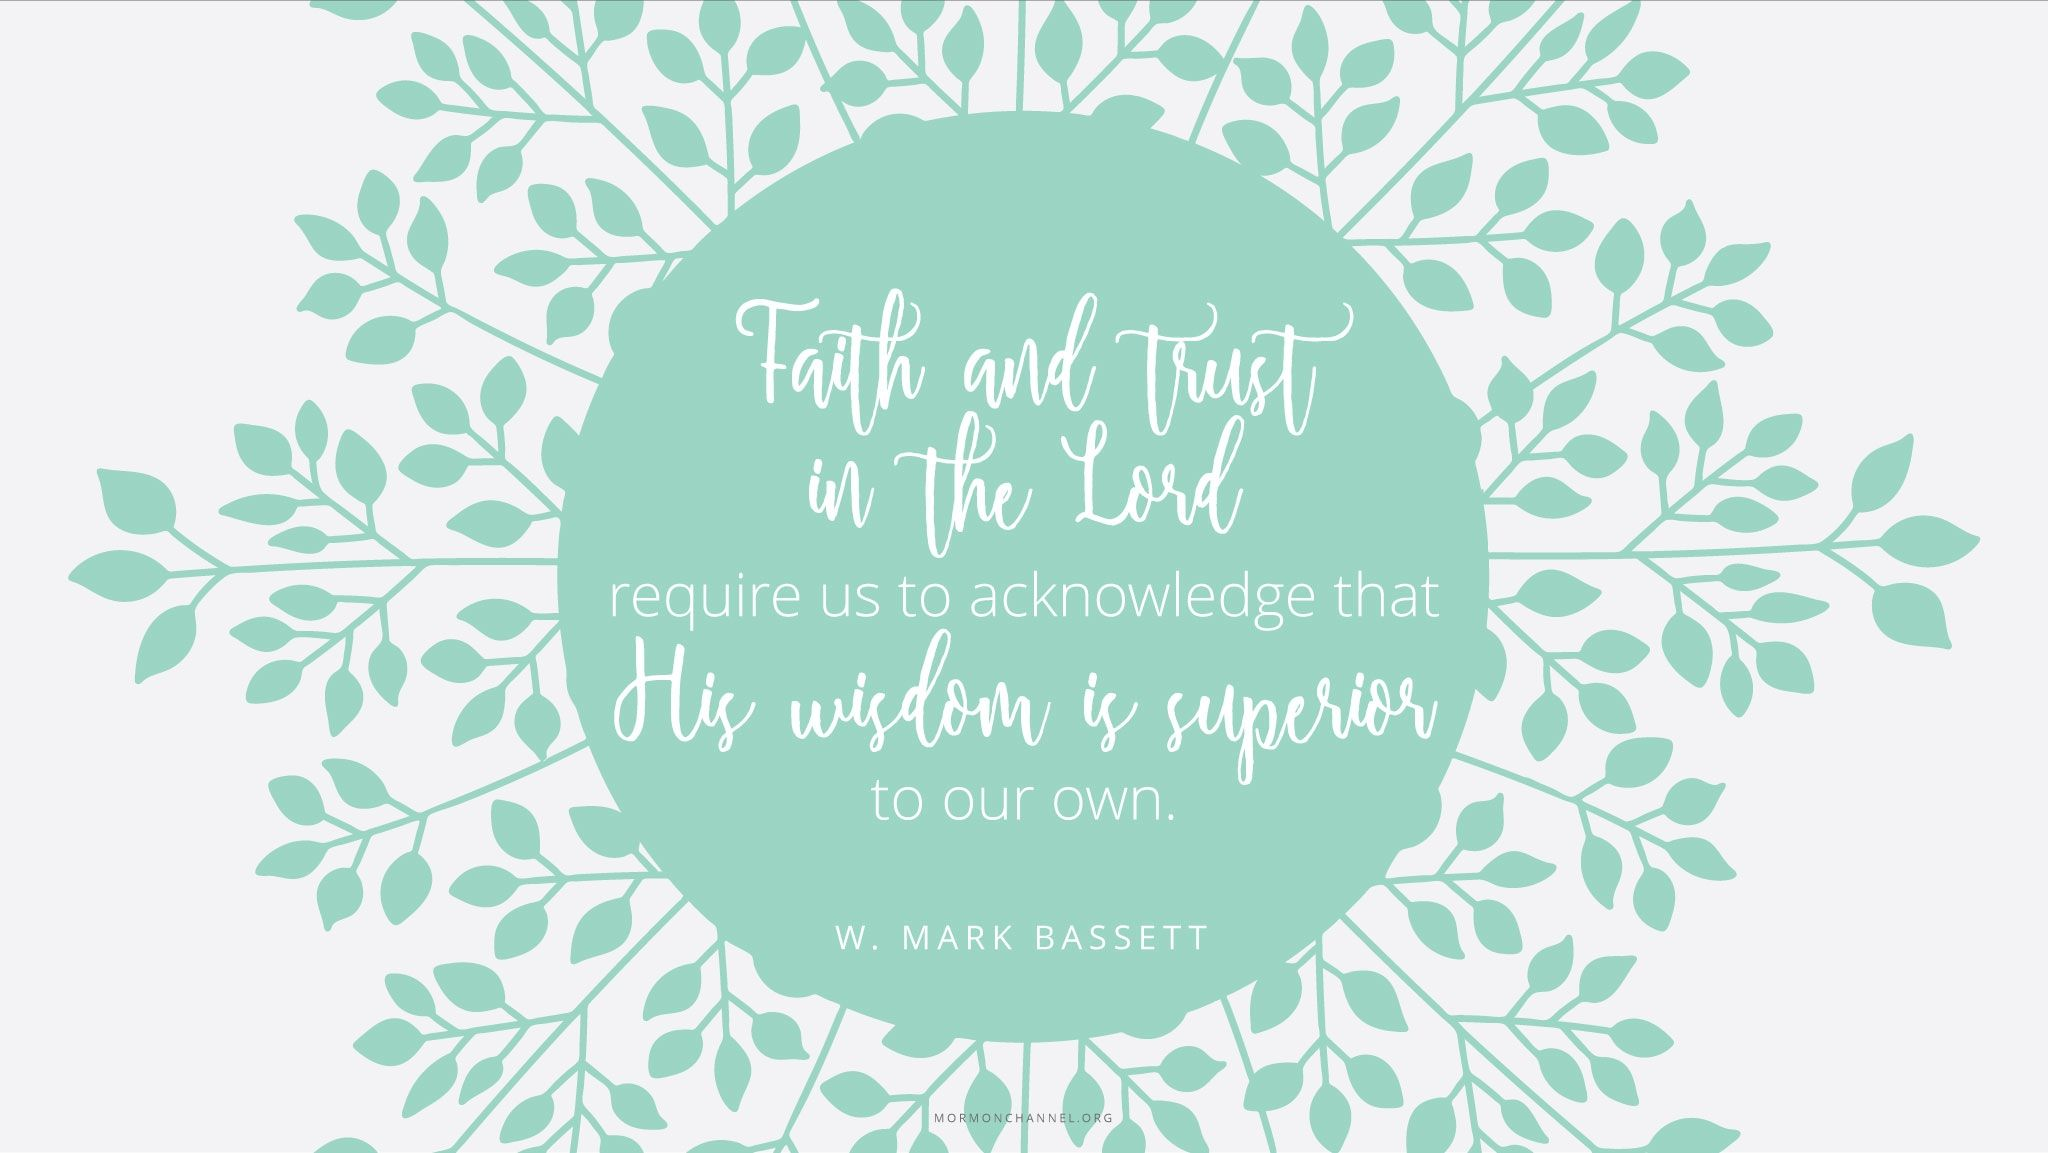 """""""Faith and trust in the Lord require us to acknowledge that His wisdom is superior to our own.""""—Elder W. Mark Bassett, """"For Our Spiritual Development and Learning"""""""